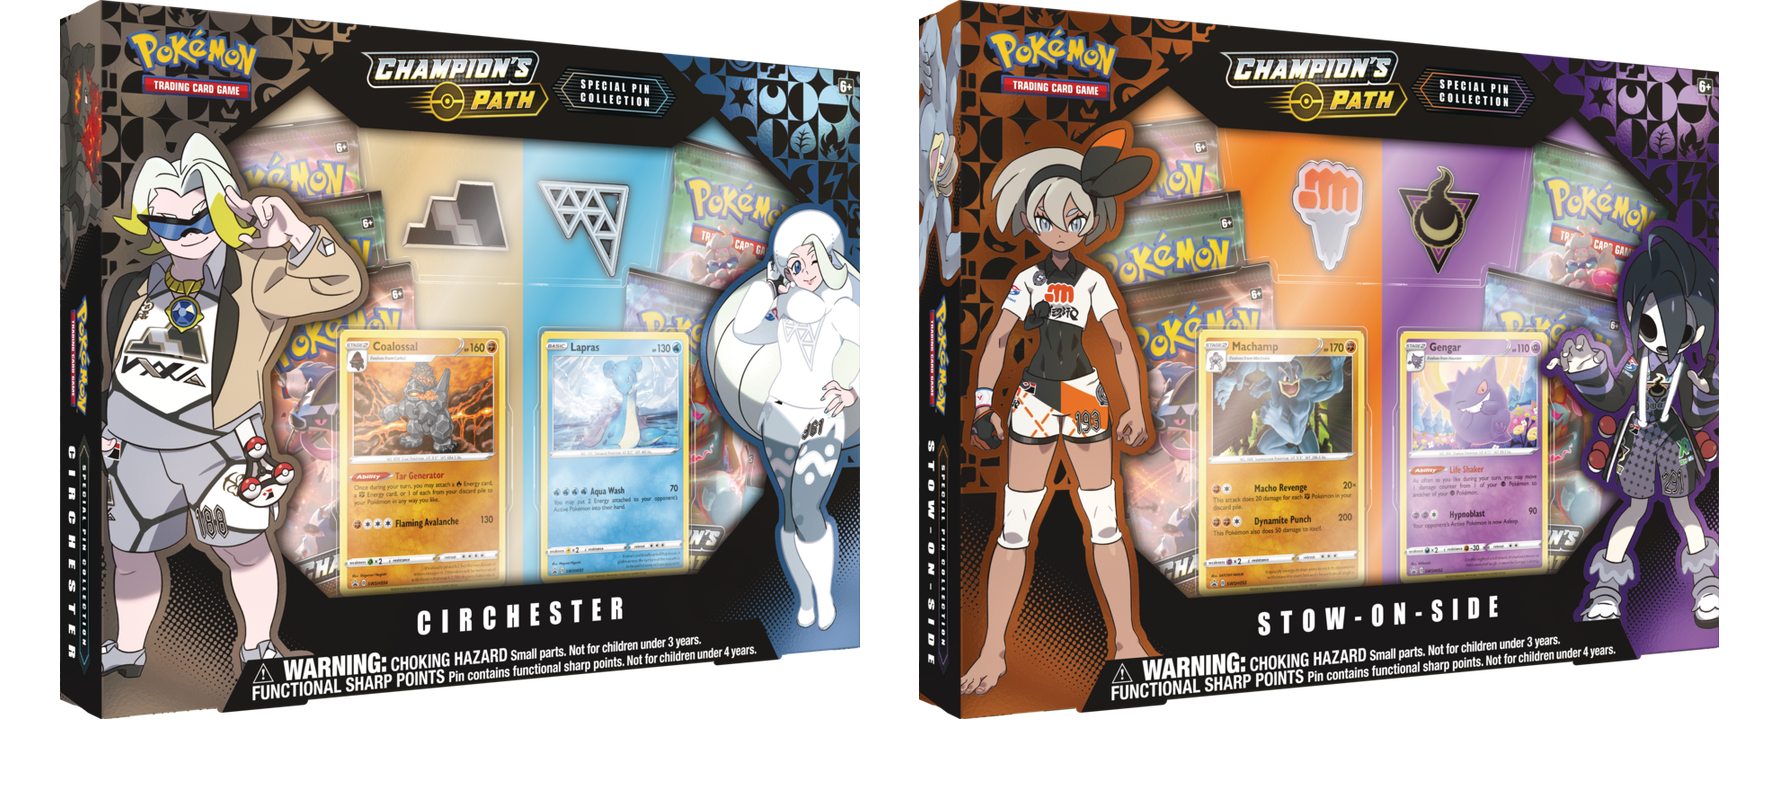 pokemon champion's path circhester and stow-on-side boxes